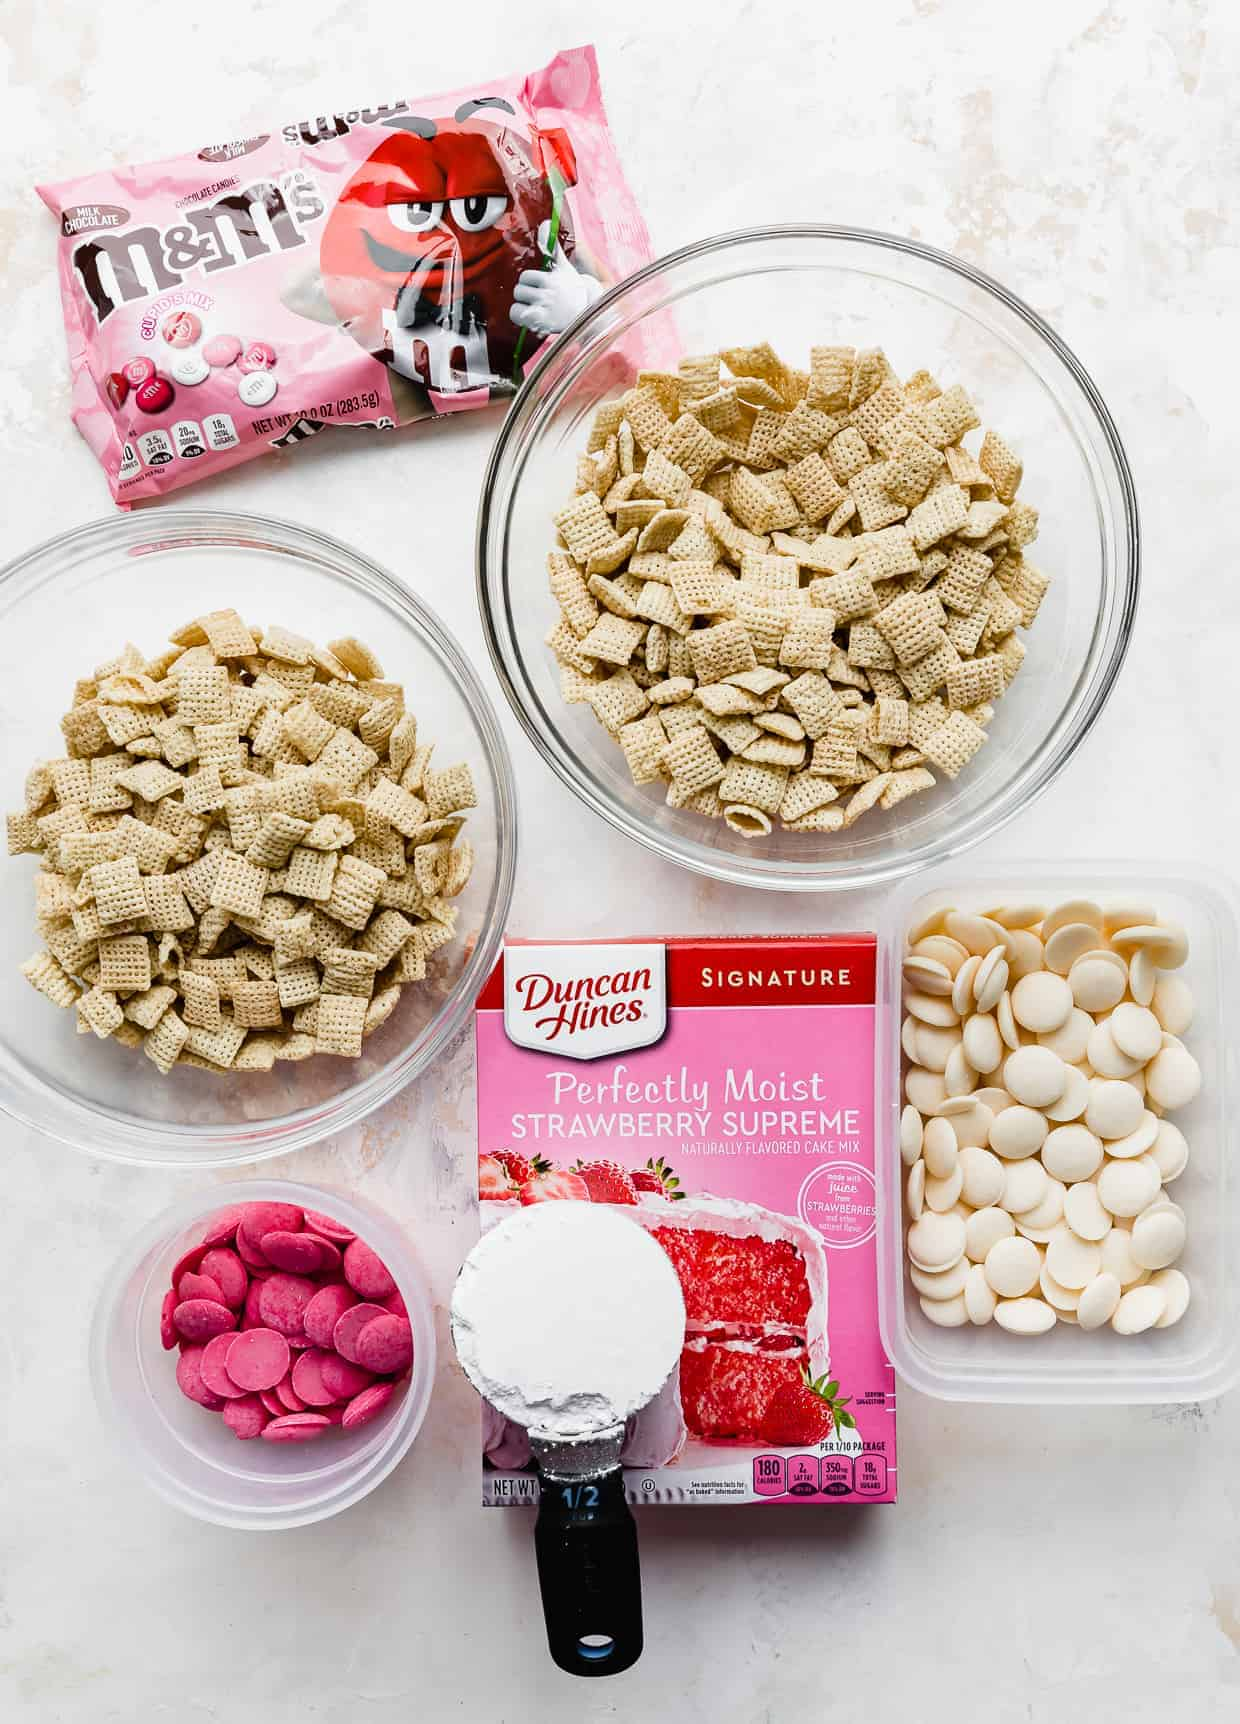 Rice Chex mix, strawberry cake mix box, powdered sugar, Valentine's Day M&M's, and white and pink candy melts against a white background.